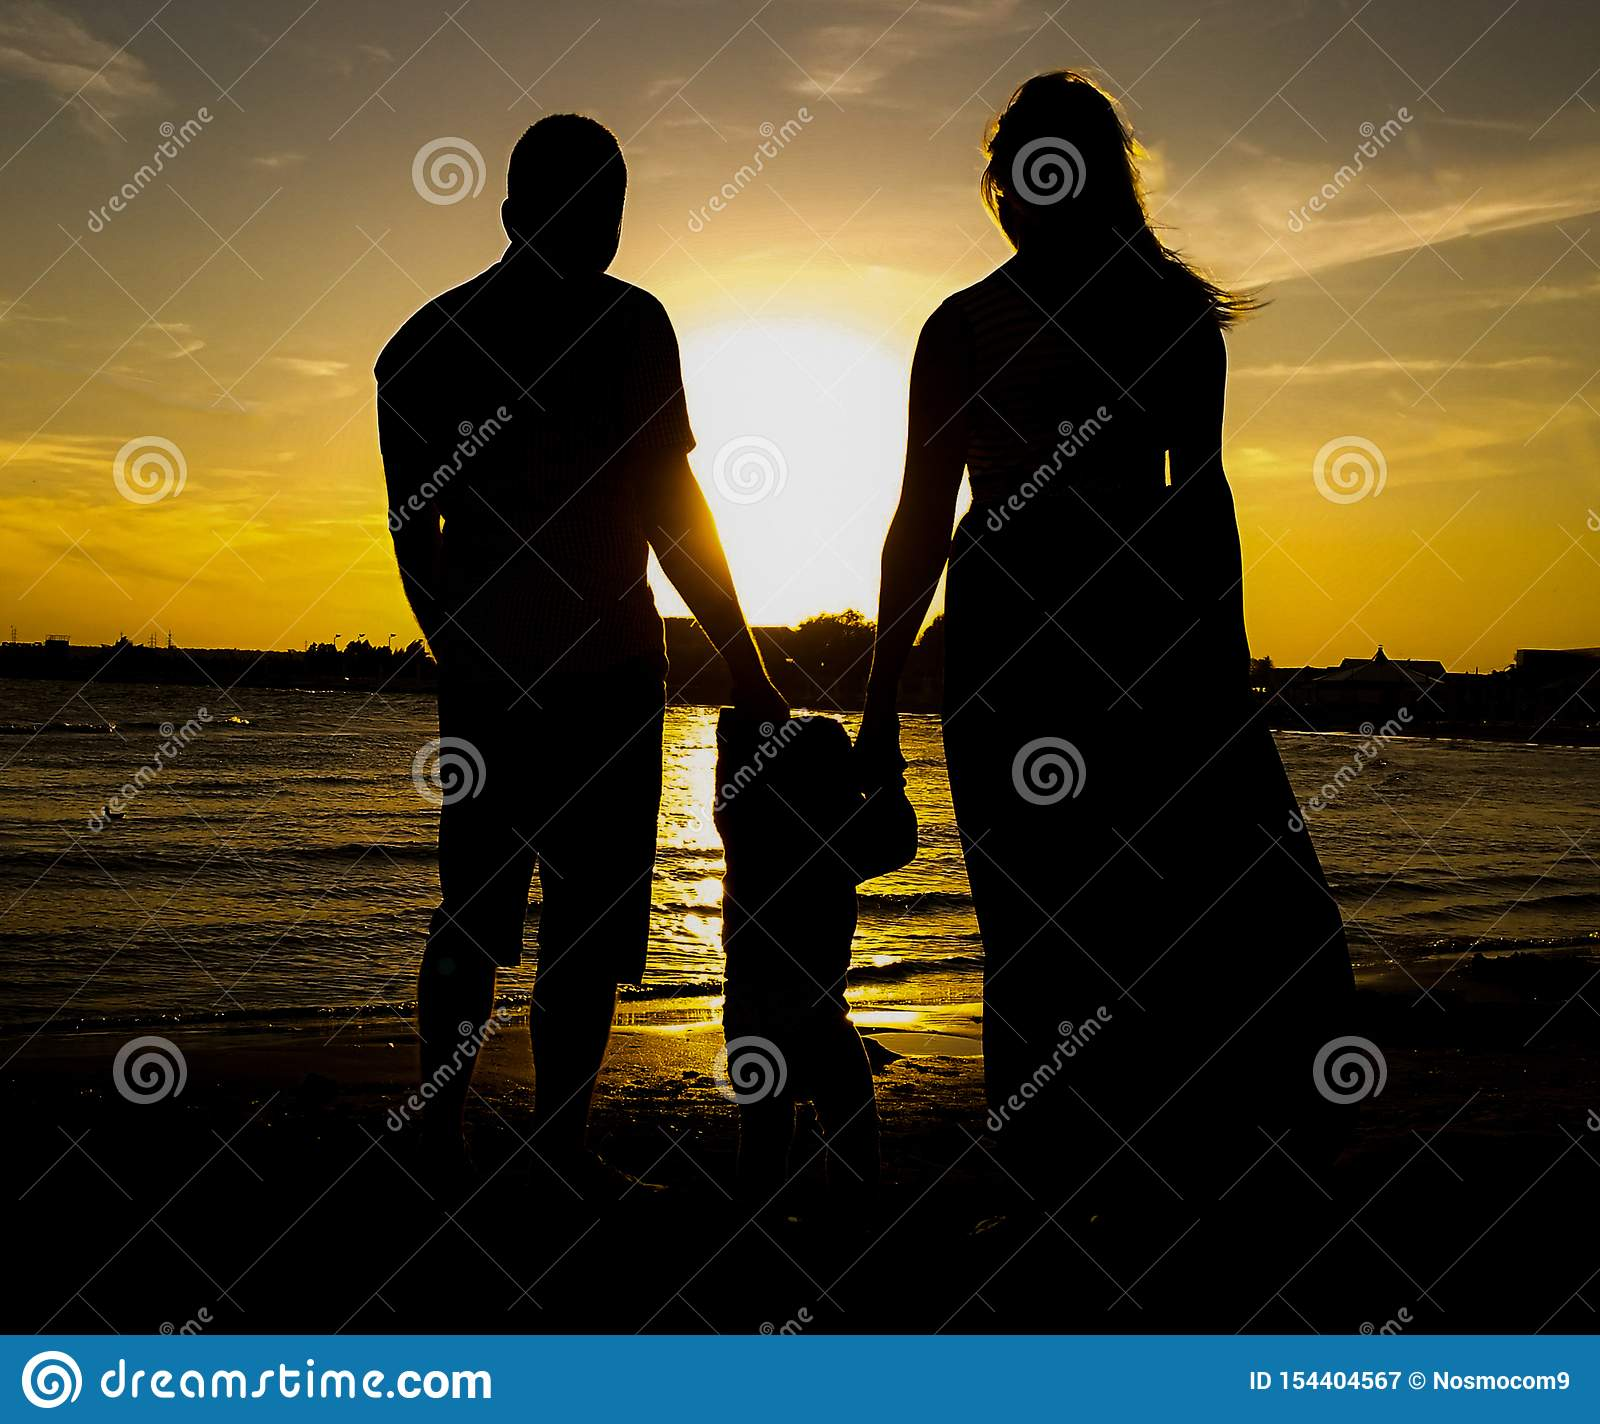 Happy family standing on beach against sky during sunset. Father, mother and daughter who are holding their hands